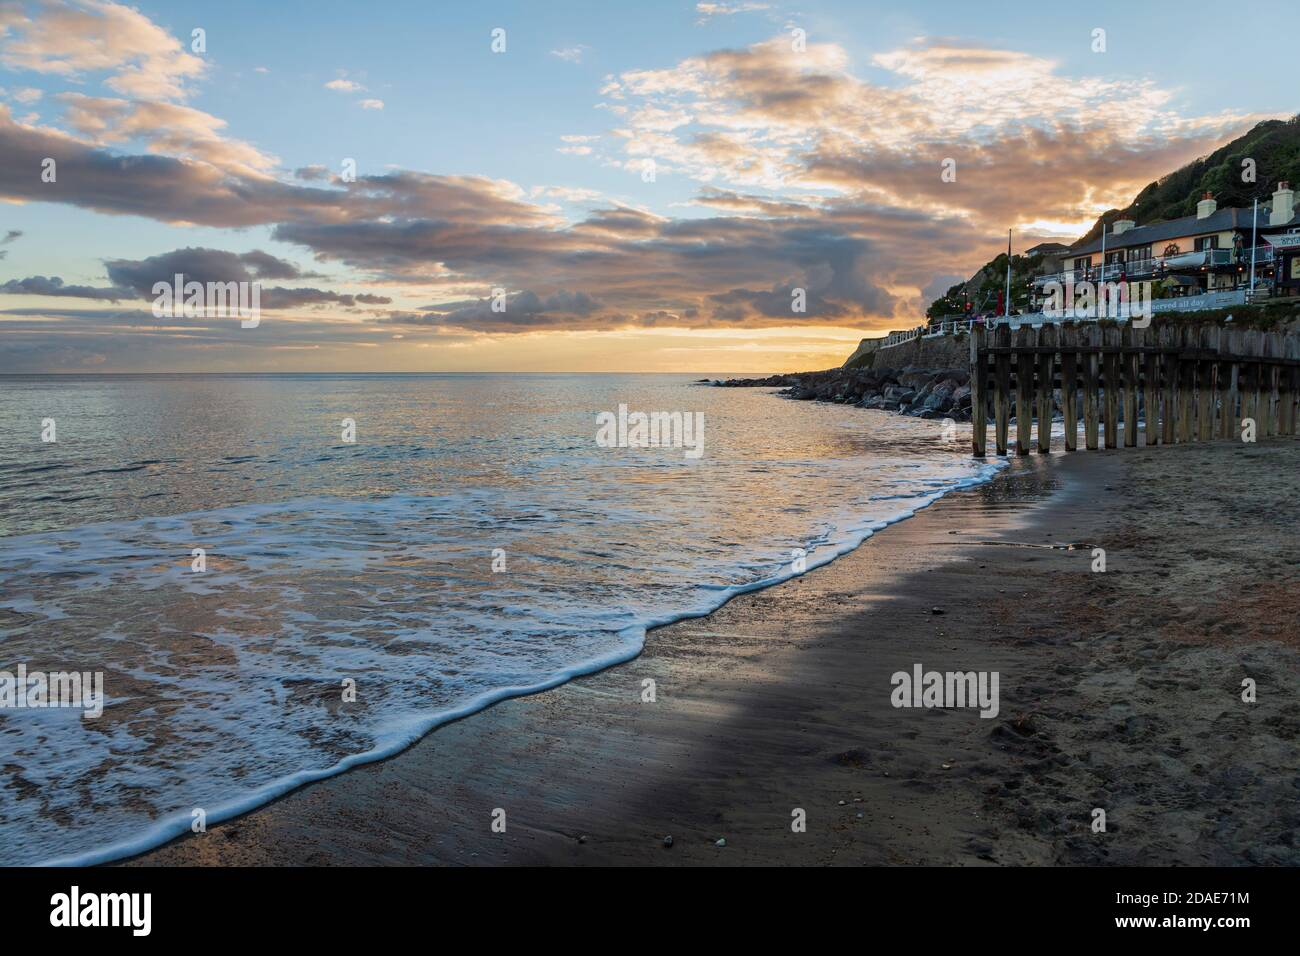 Sunset from the beach at Ventnor, Isle of Wight Stock Photo